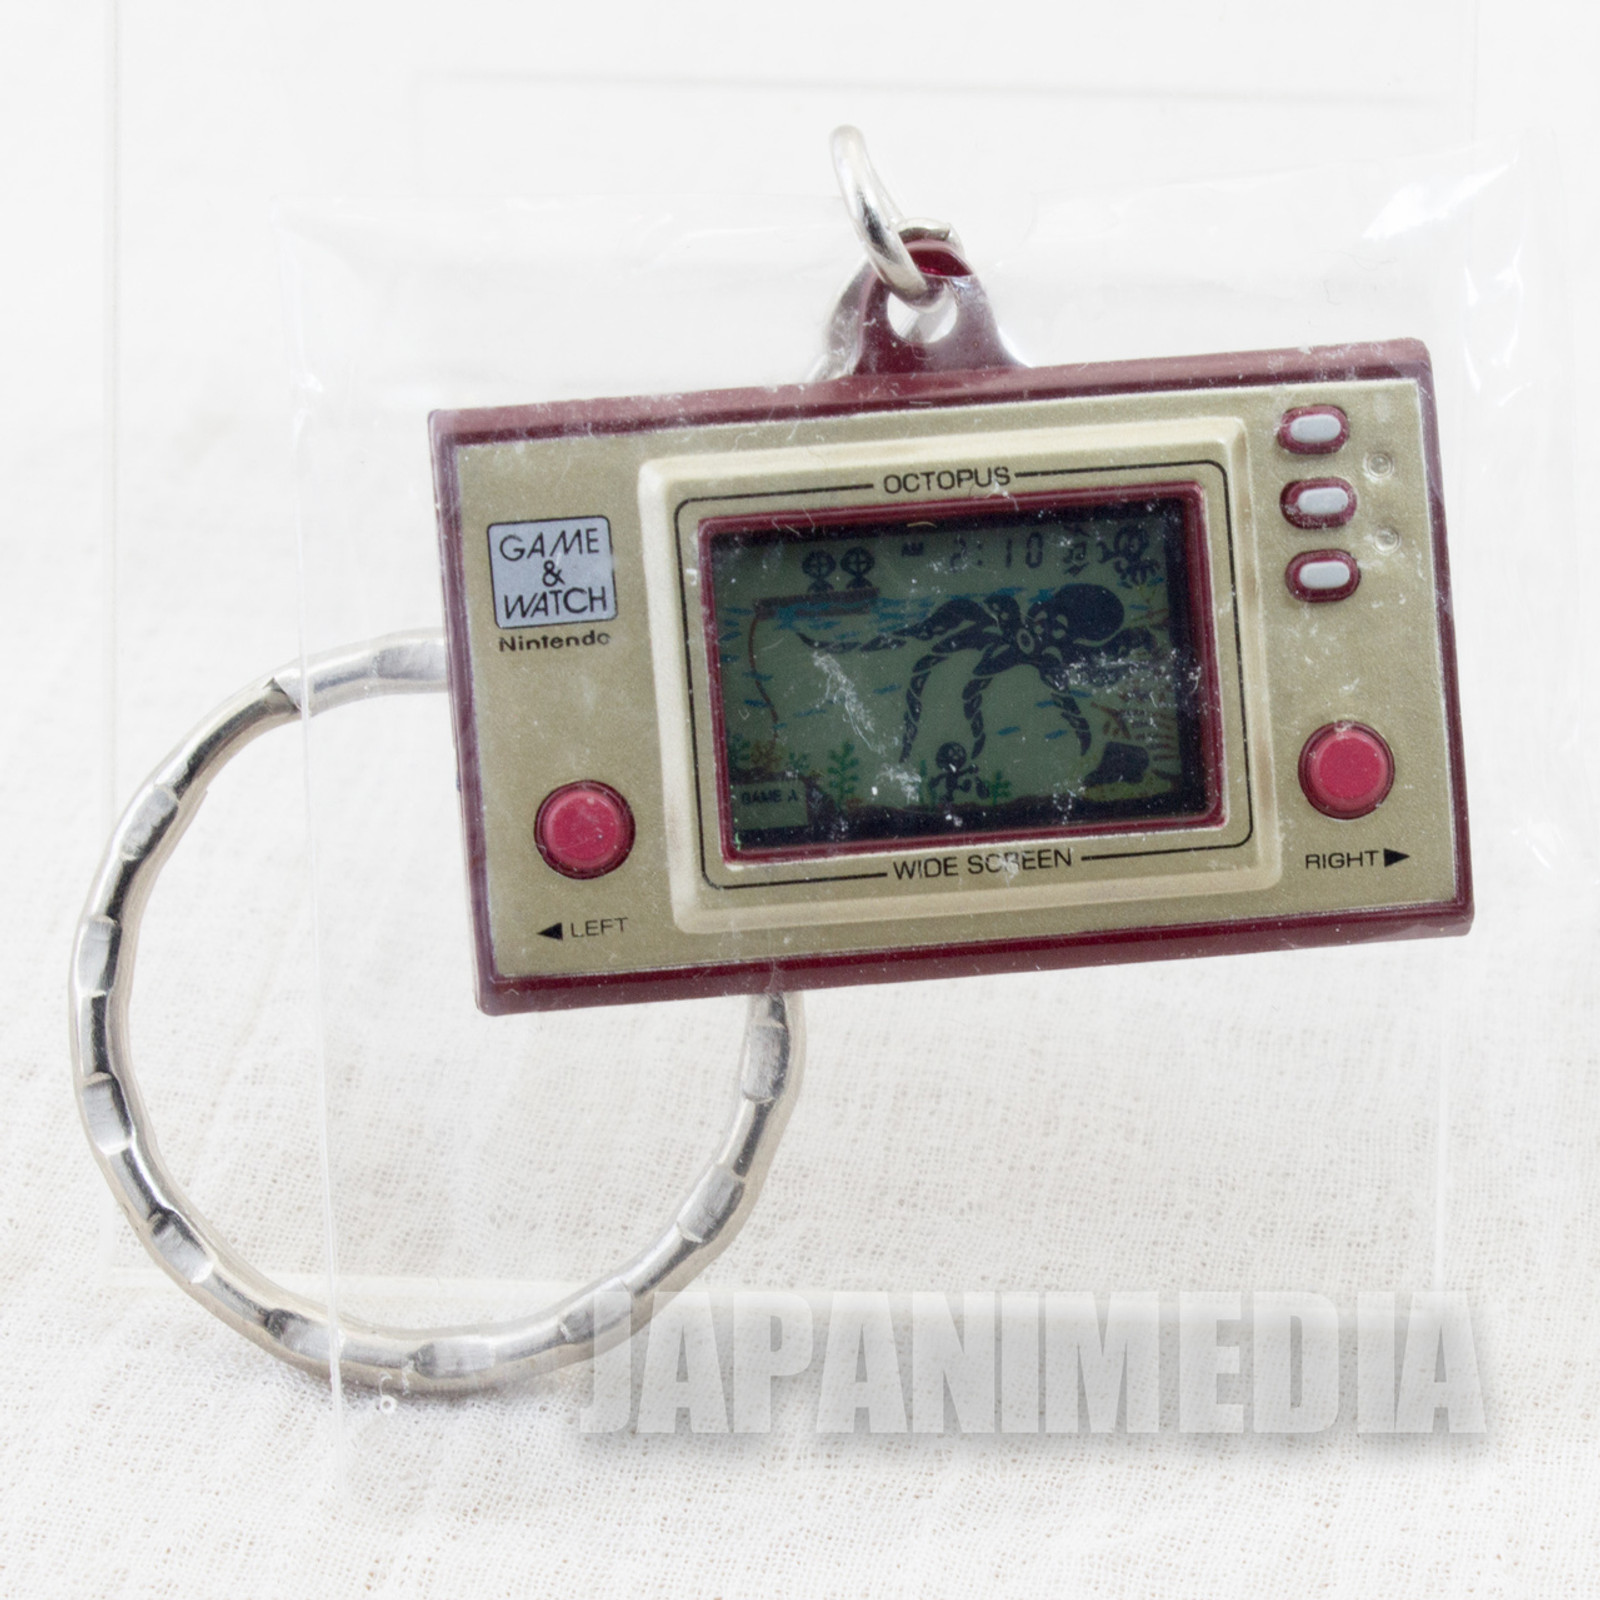 Nintendo Game & Watch History Miniature Figure Key Chain OCTOPUS JAPAN 2